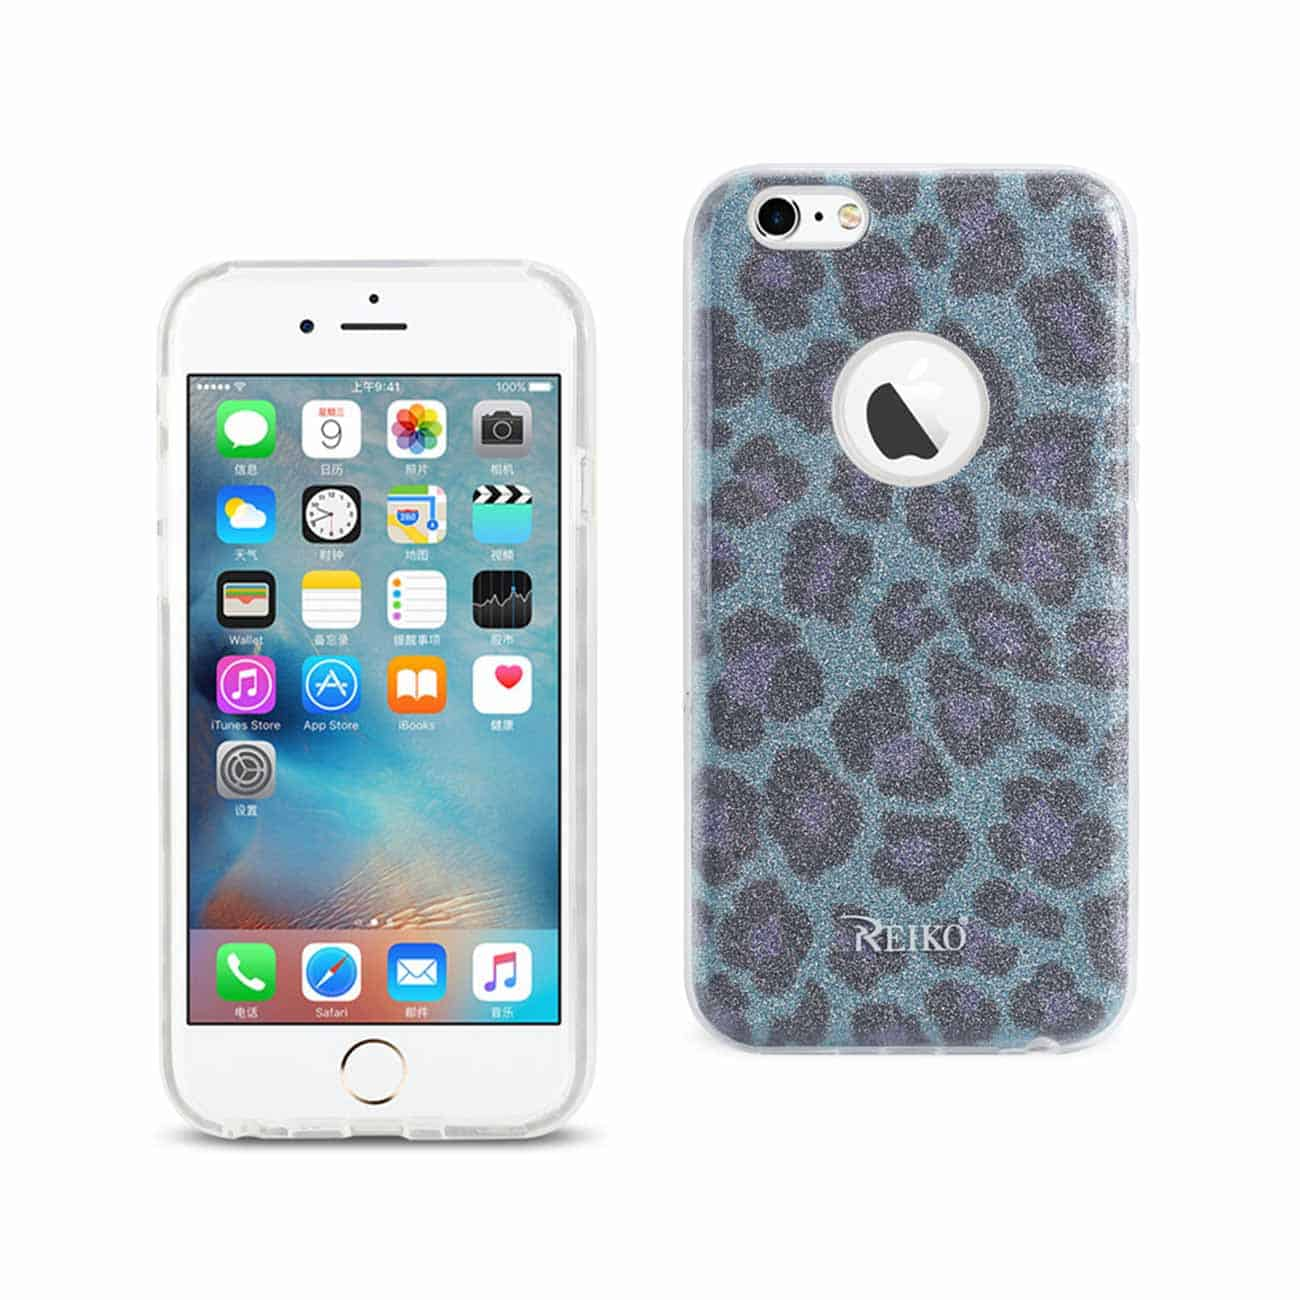 IPHONE 6/ 6S SHINE GLITTER SHIMMER LEOPARD HYBRID CASE IN BLUE